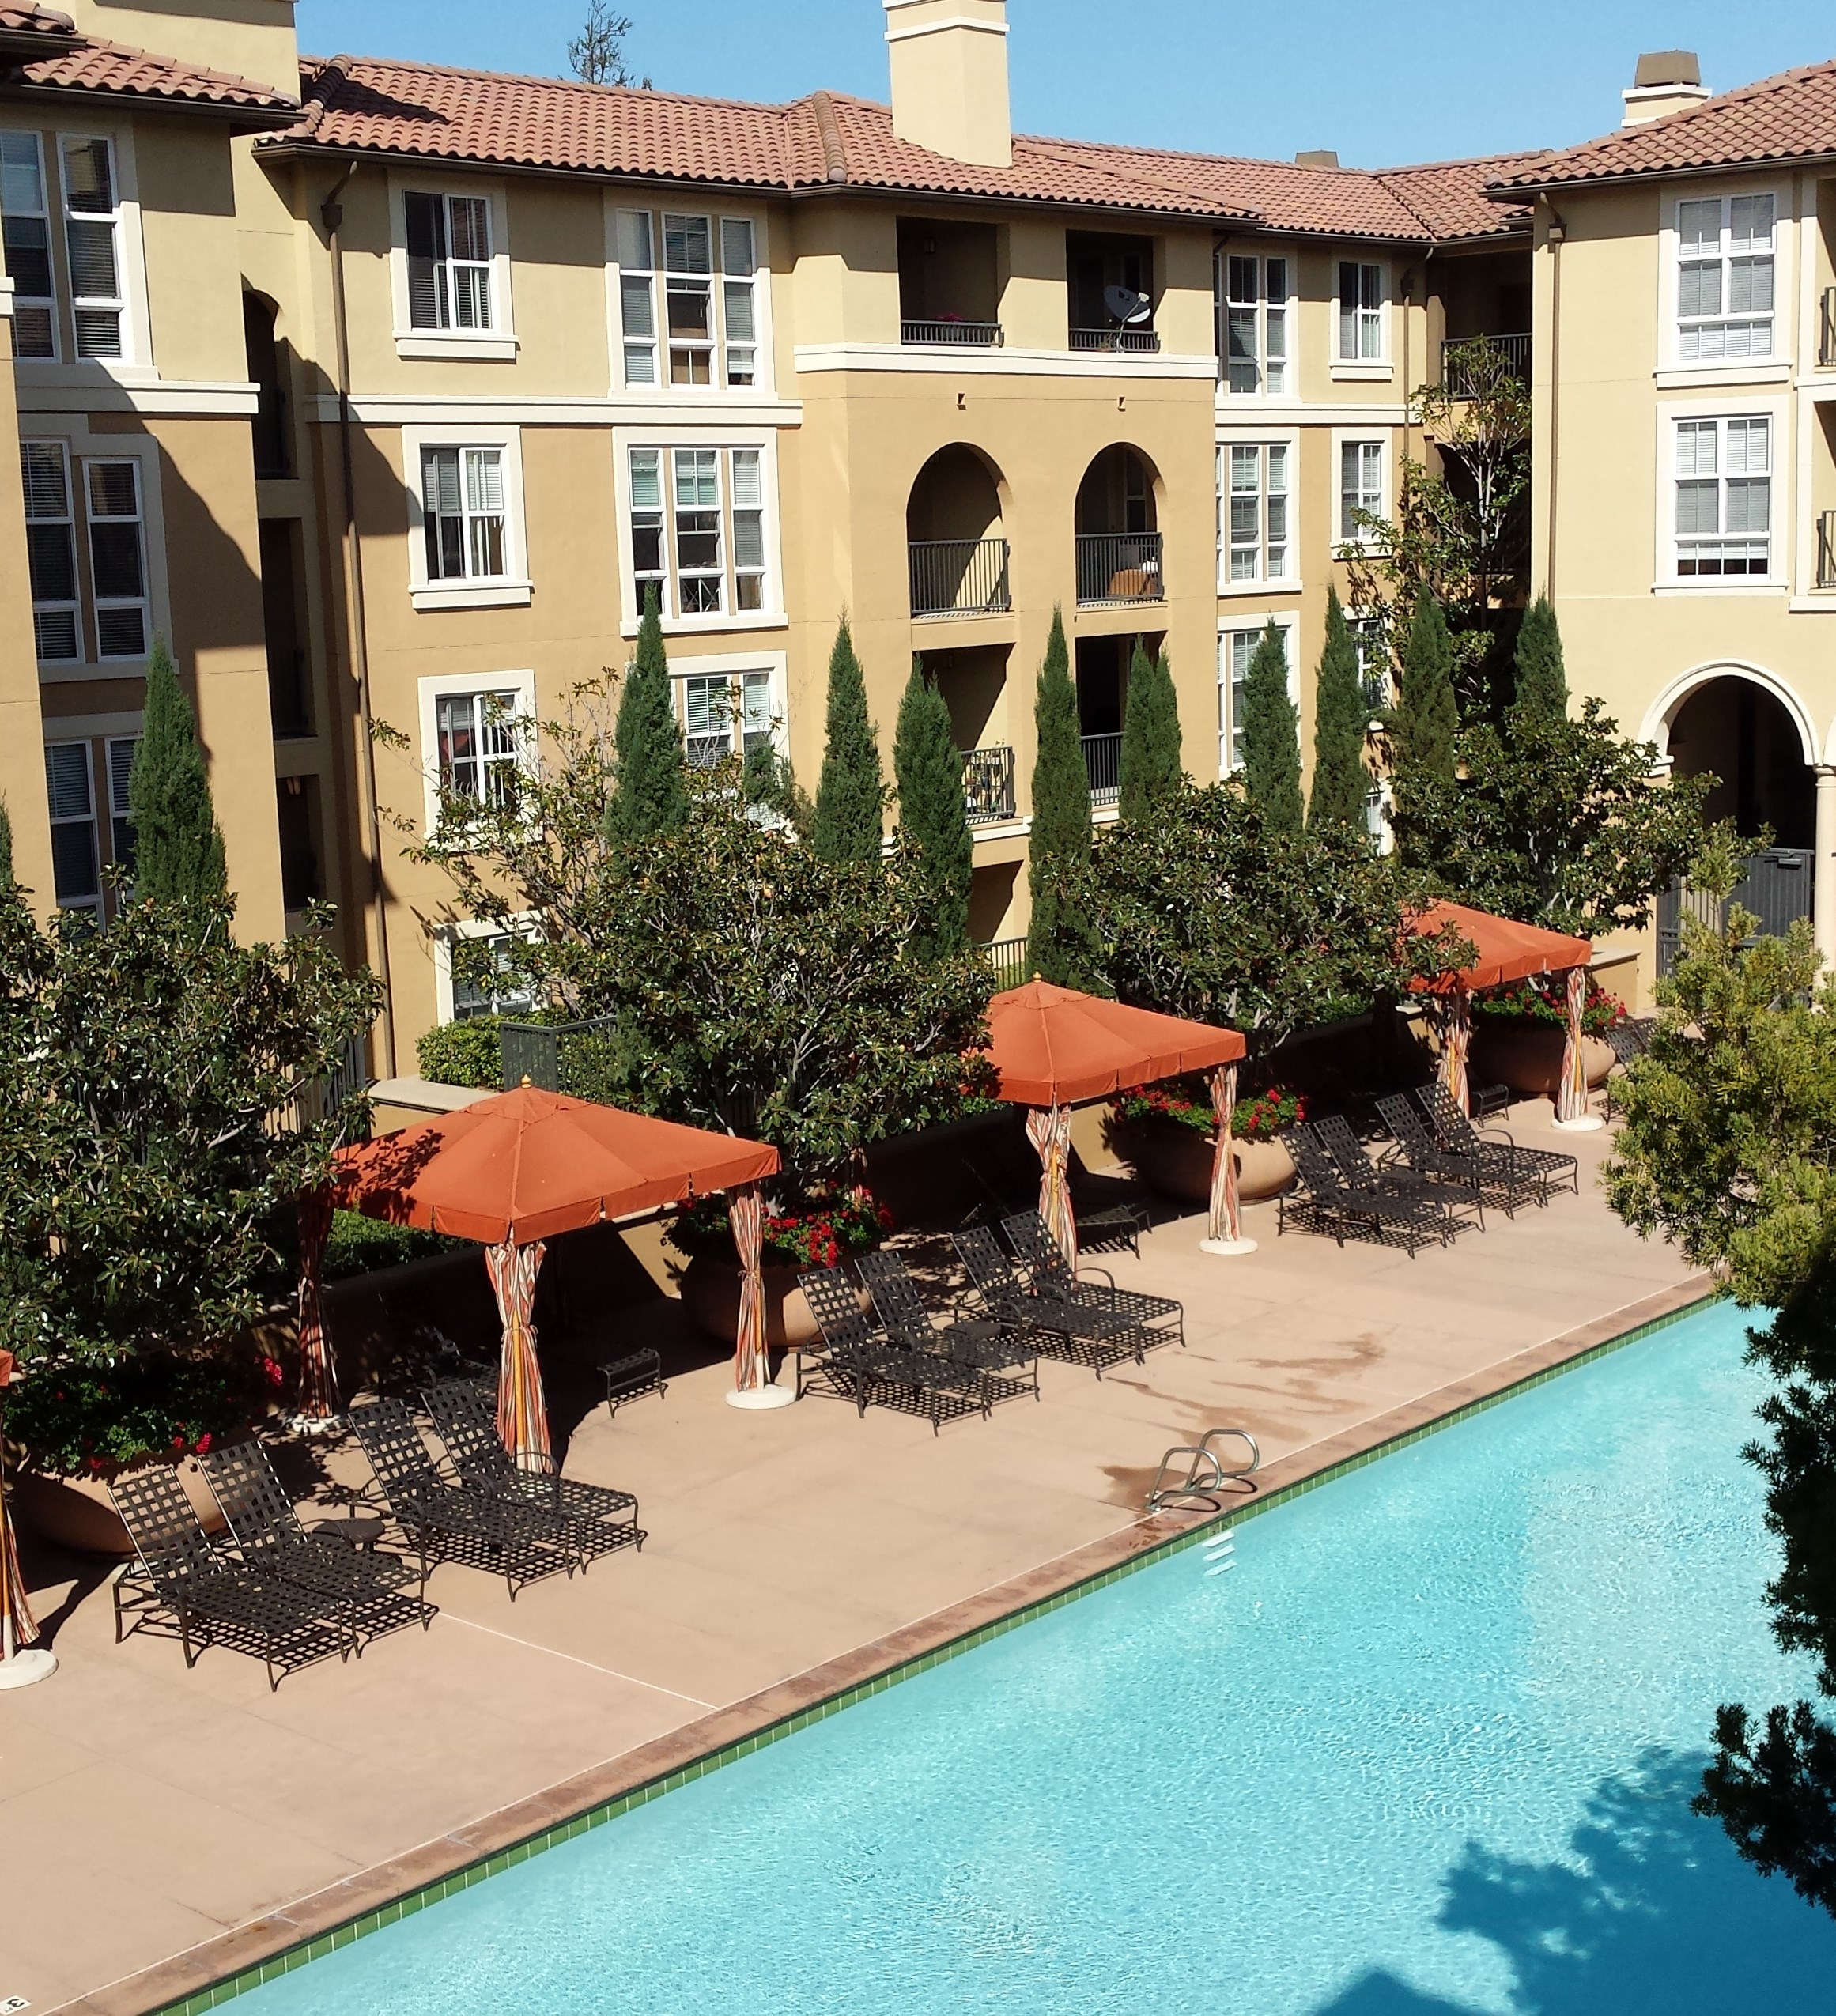 City Parc Ii At West Oaks Houston: 1bed / 1bath Available For Rent In 2BHK Apartment In Elan